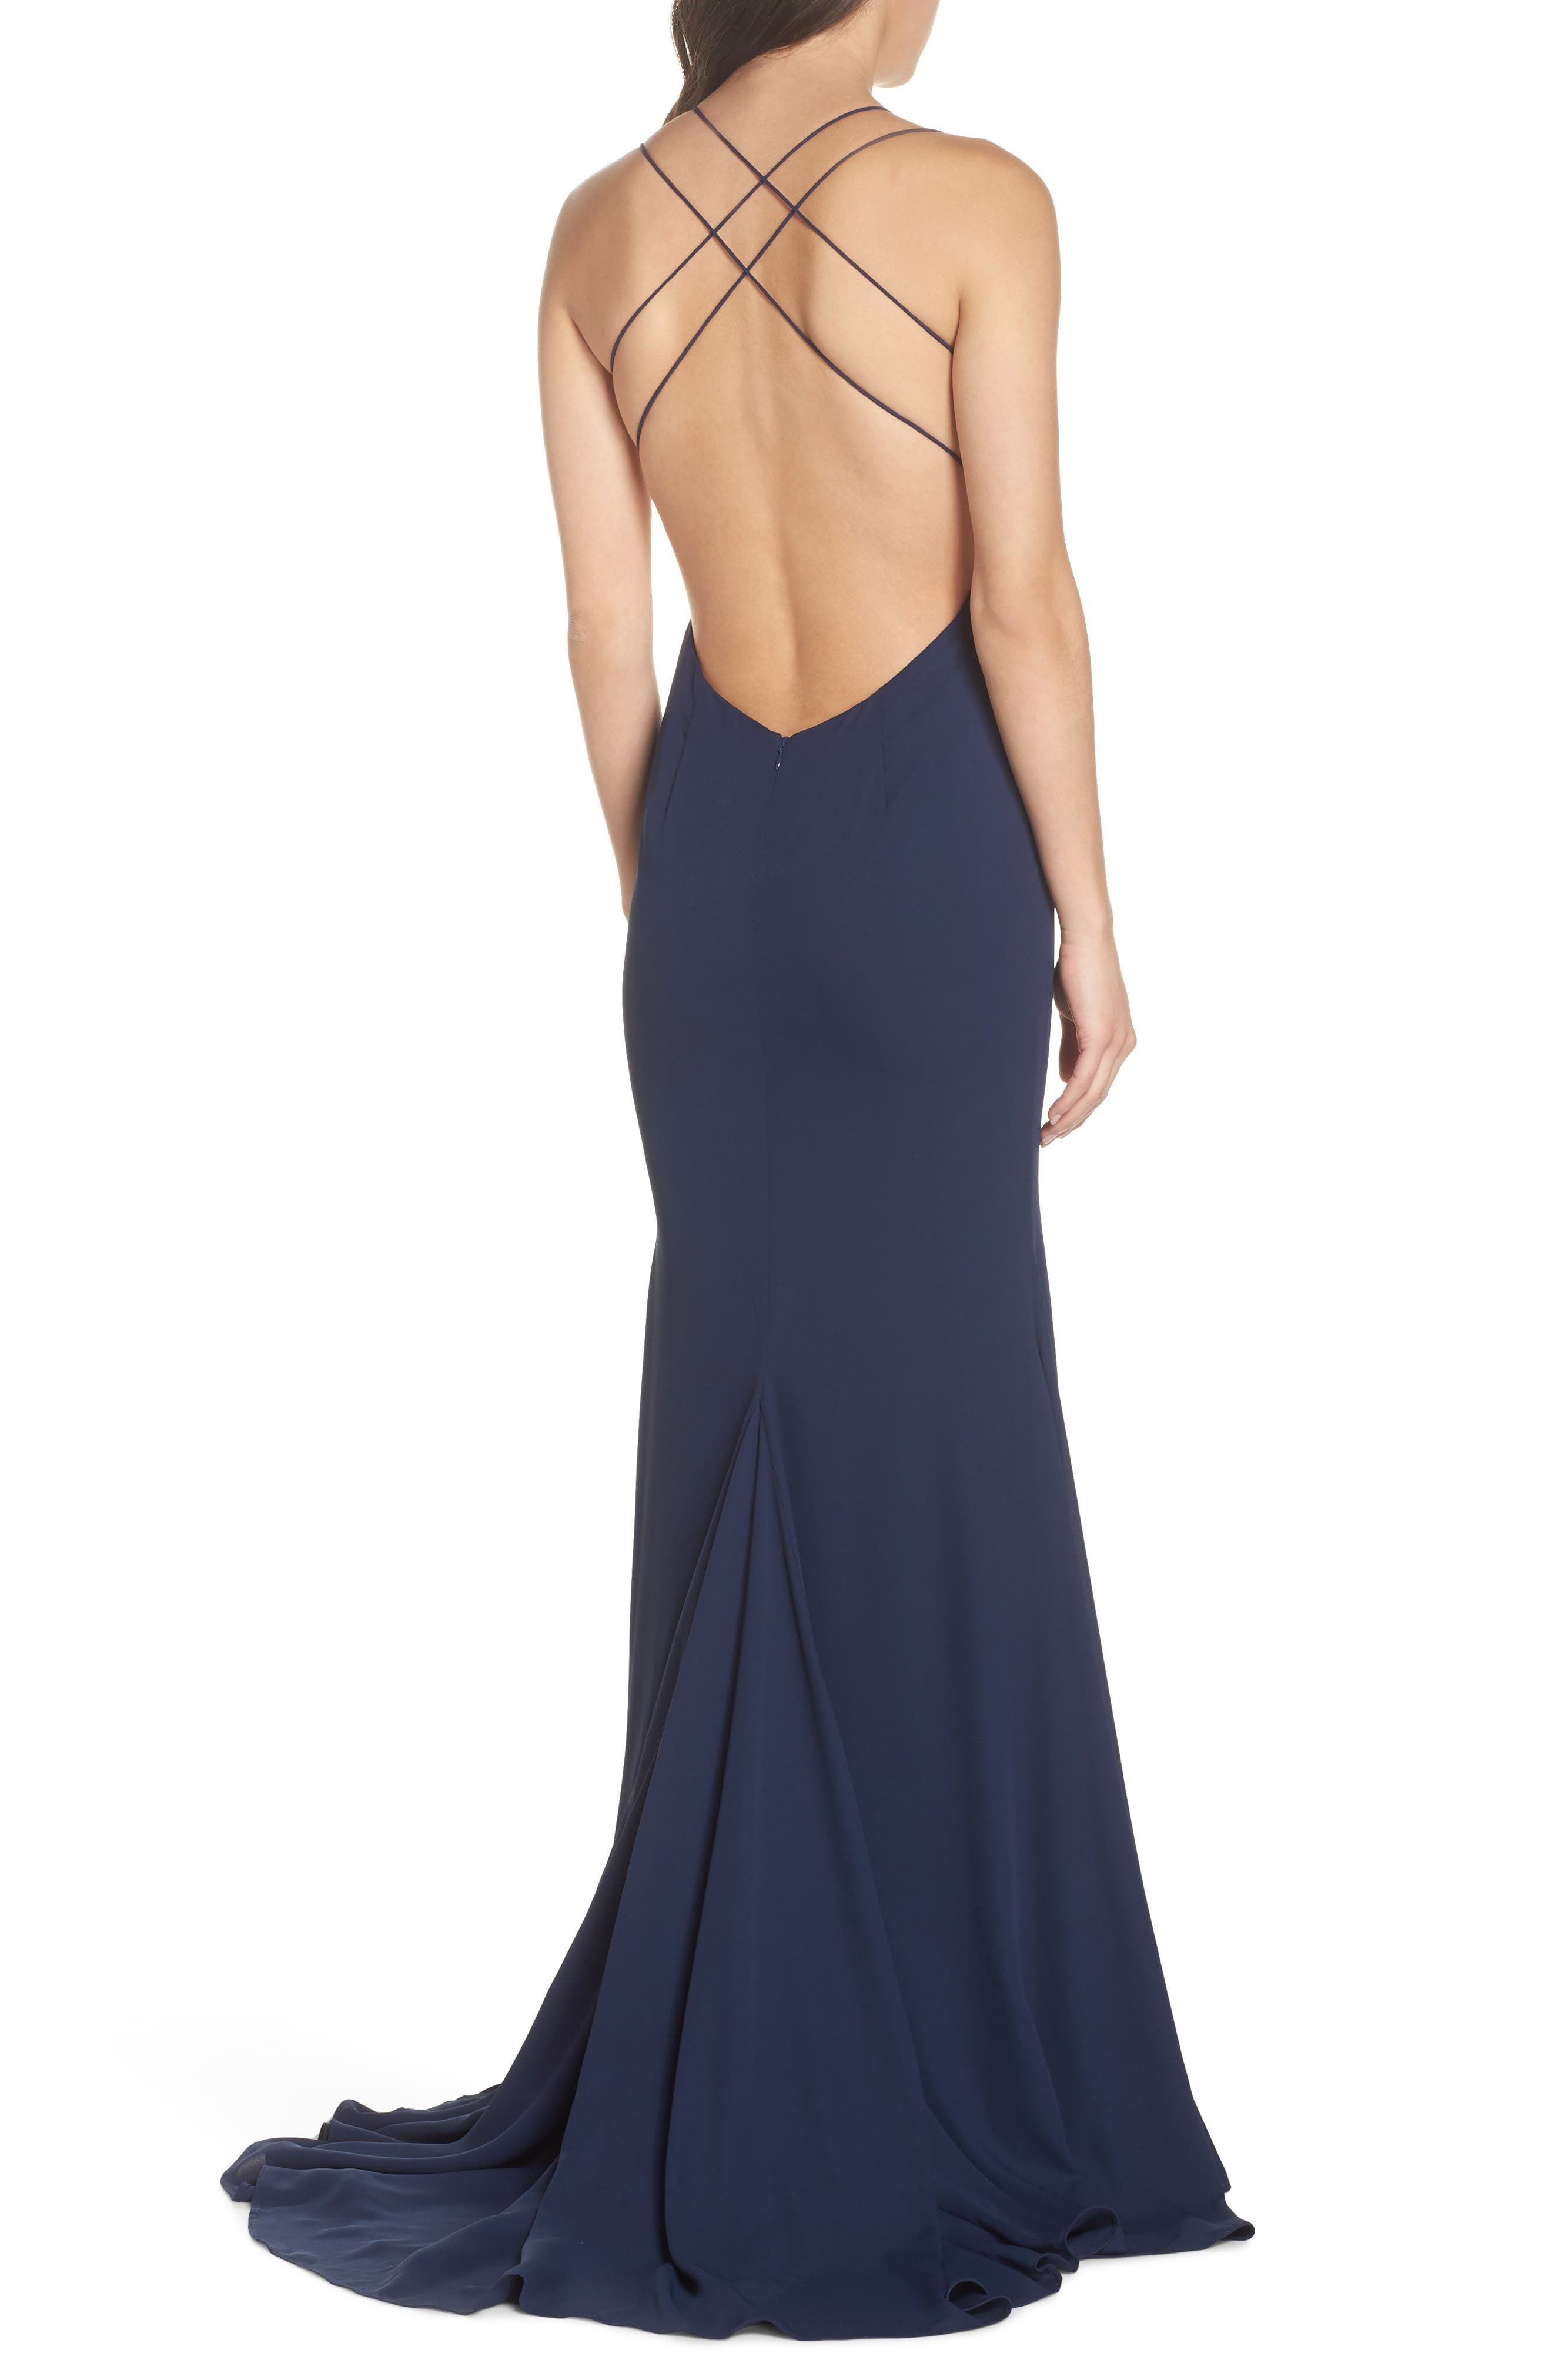 Fame & Partners Surreal Dreamer Cutout Gown,                             Alternate thumbnail 2, color,                             Navy